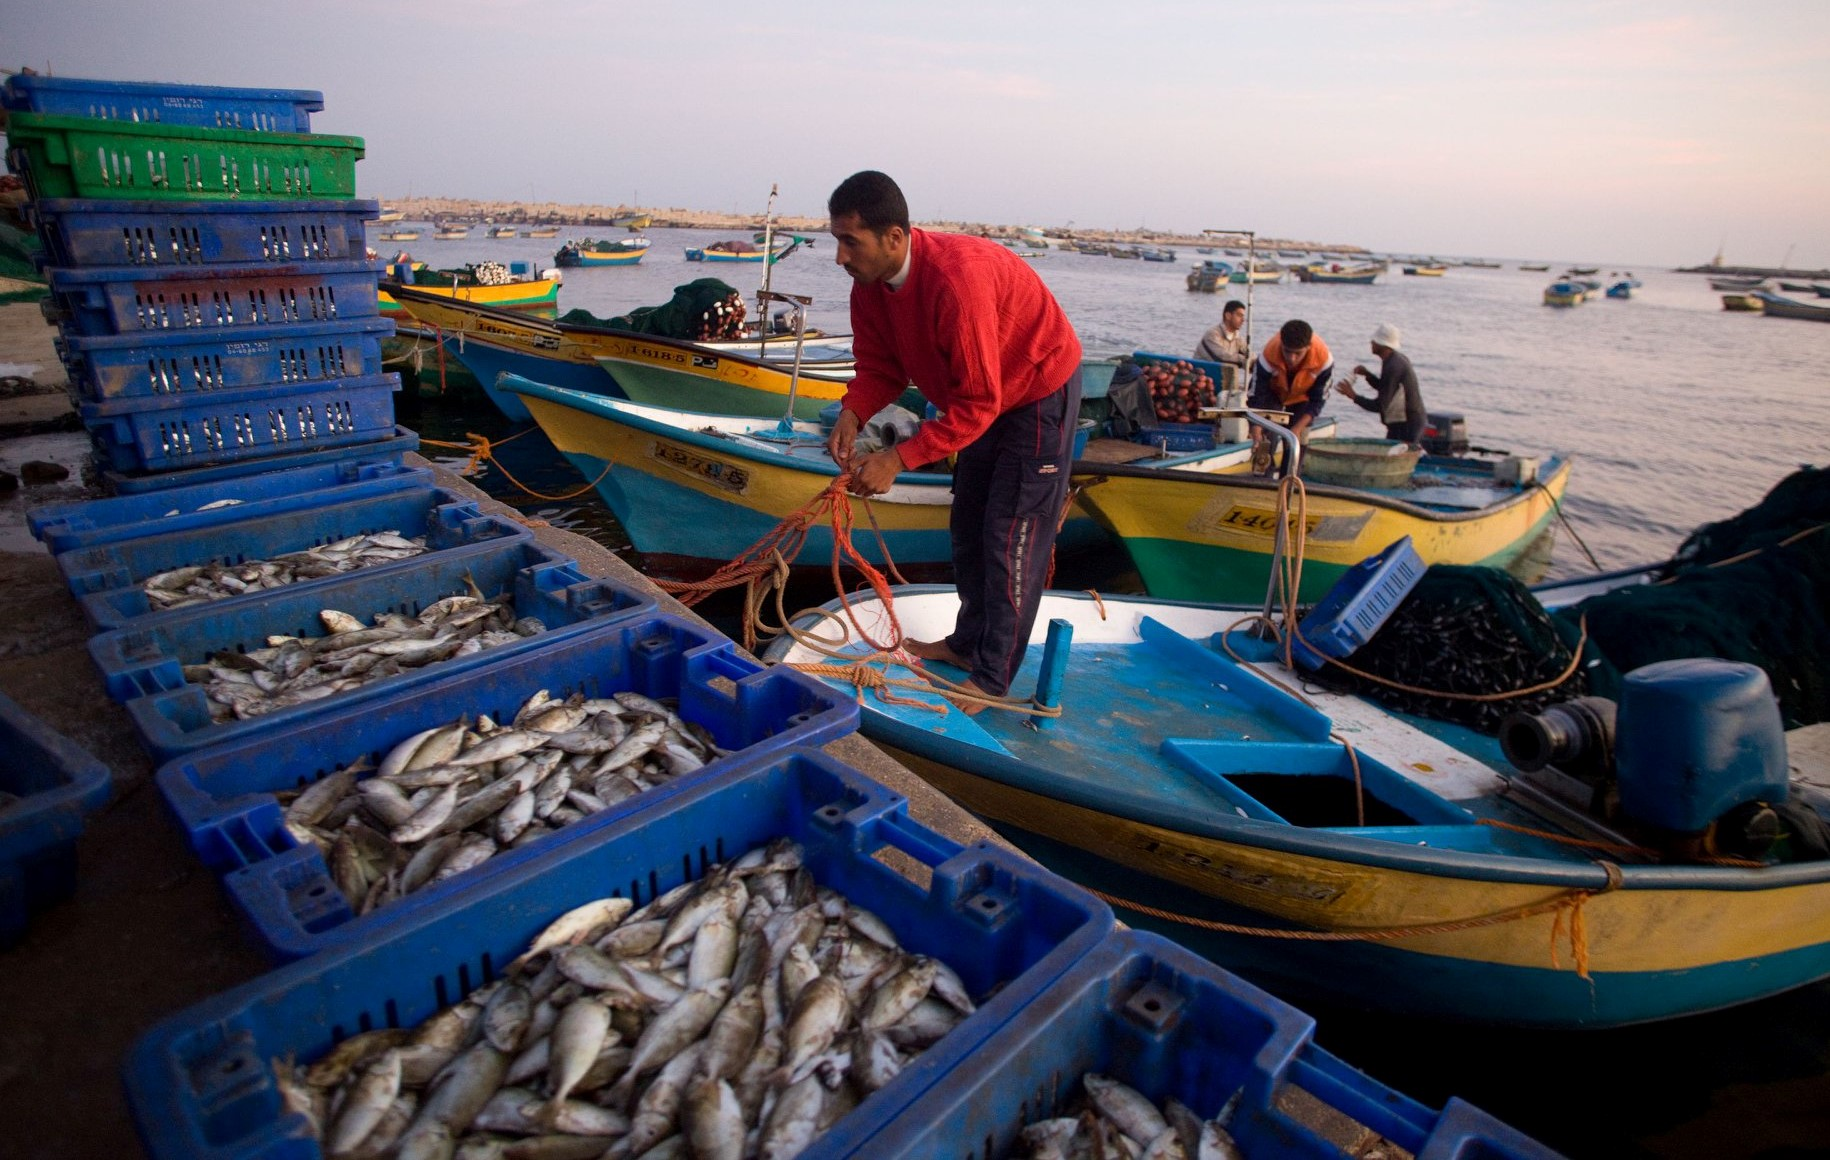 Fishermen in the port of Gaza